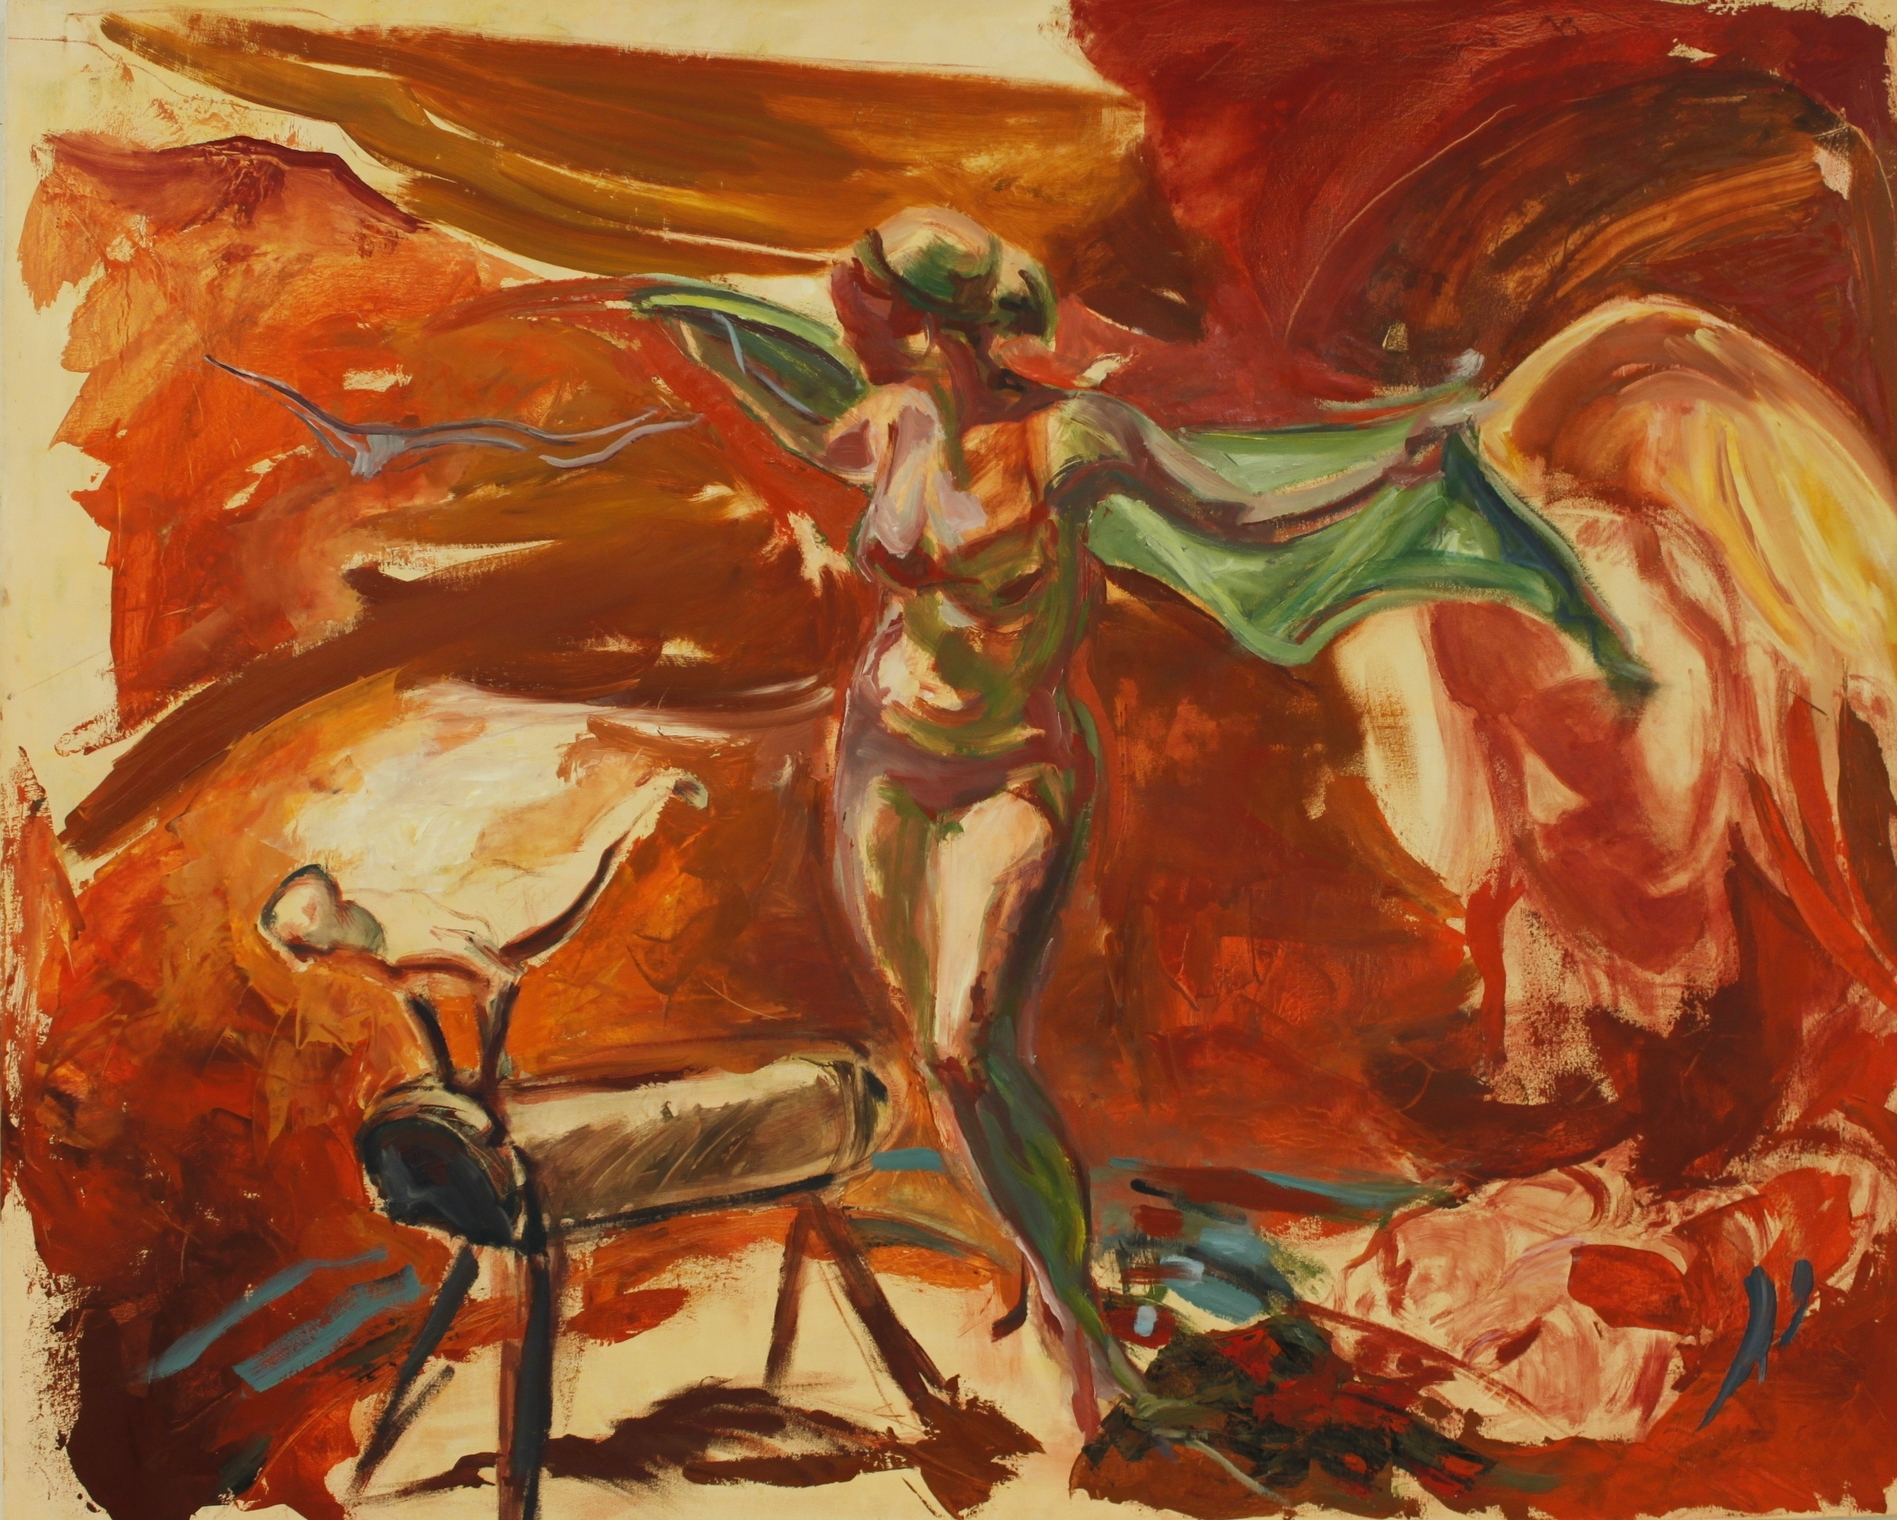 Vella Blaze 2014 oil on canvas 48%22 x 60%22.JPG